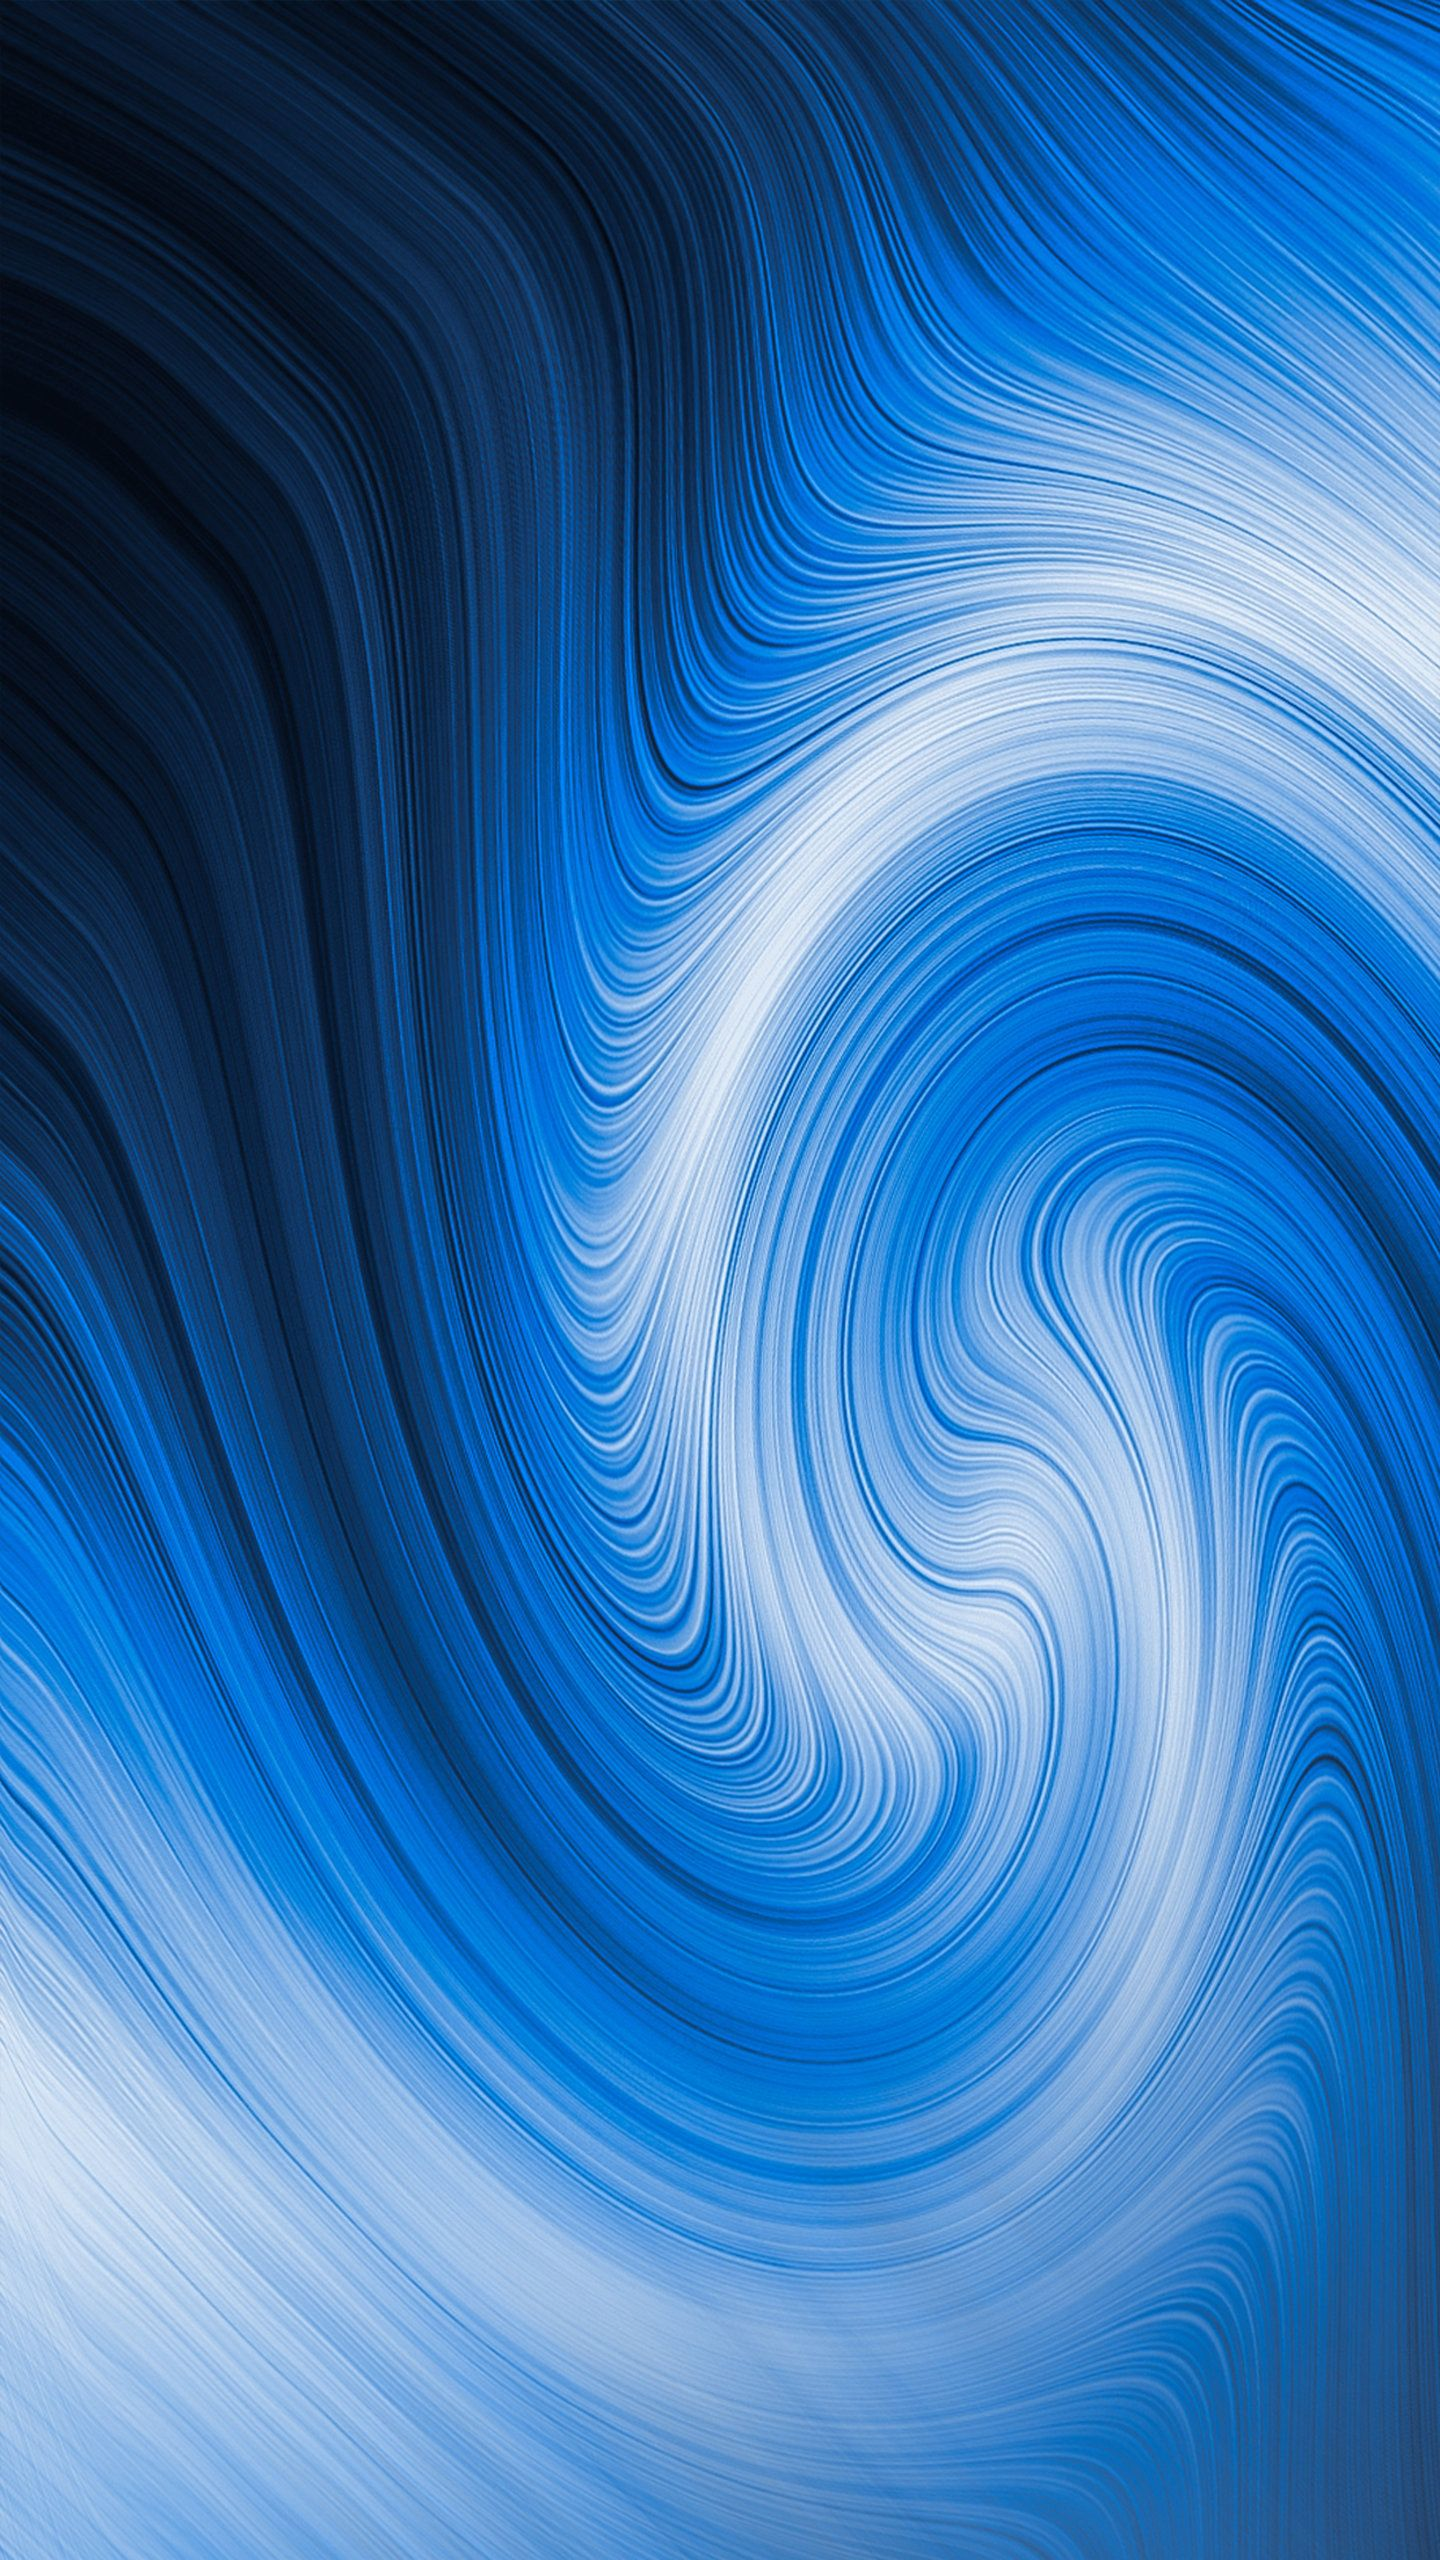 Swirl Abstract 4k Hd Wallpapers Photos And Pictures Id 44910 Abstract Abstract Wallpaper Hd Wallpaper